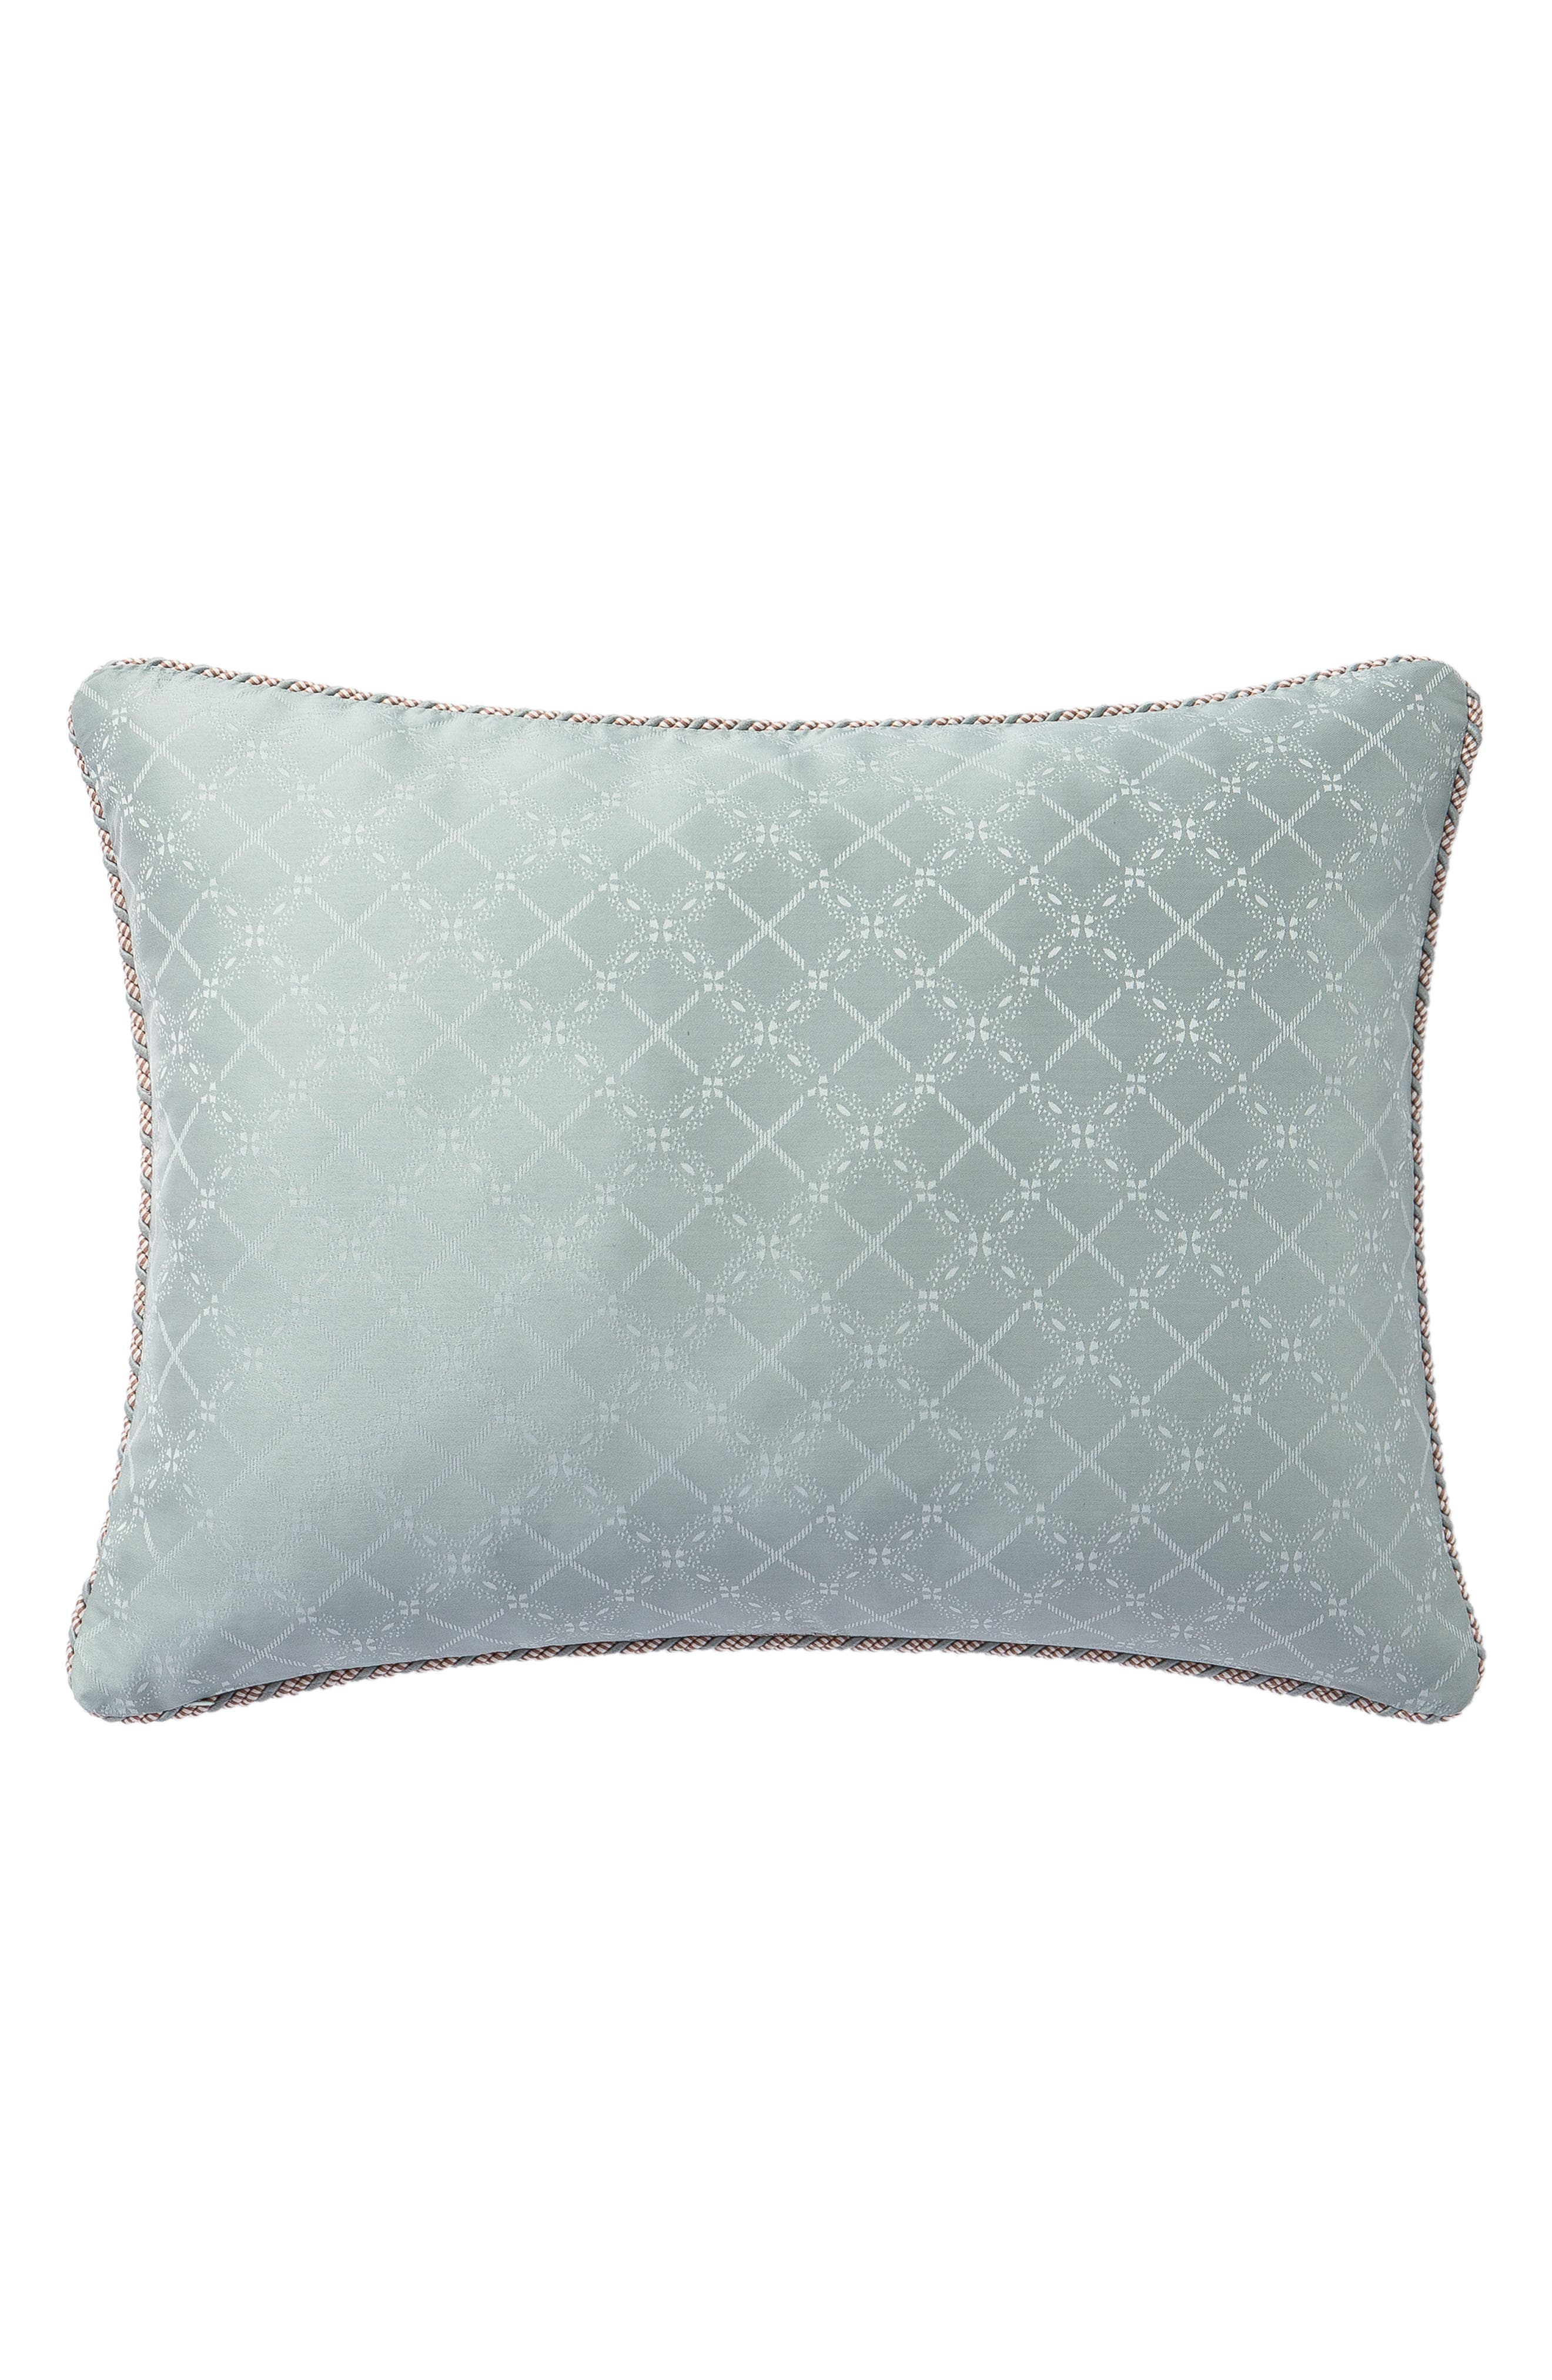 WATERFORD, Gwyneth Reversible Comforter, Sham & Bedskirt Set, Alternate thumbnail 3, color, PALE BLUE